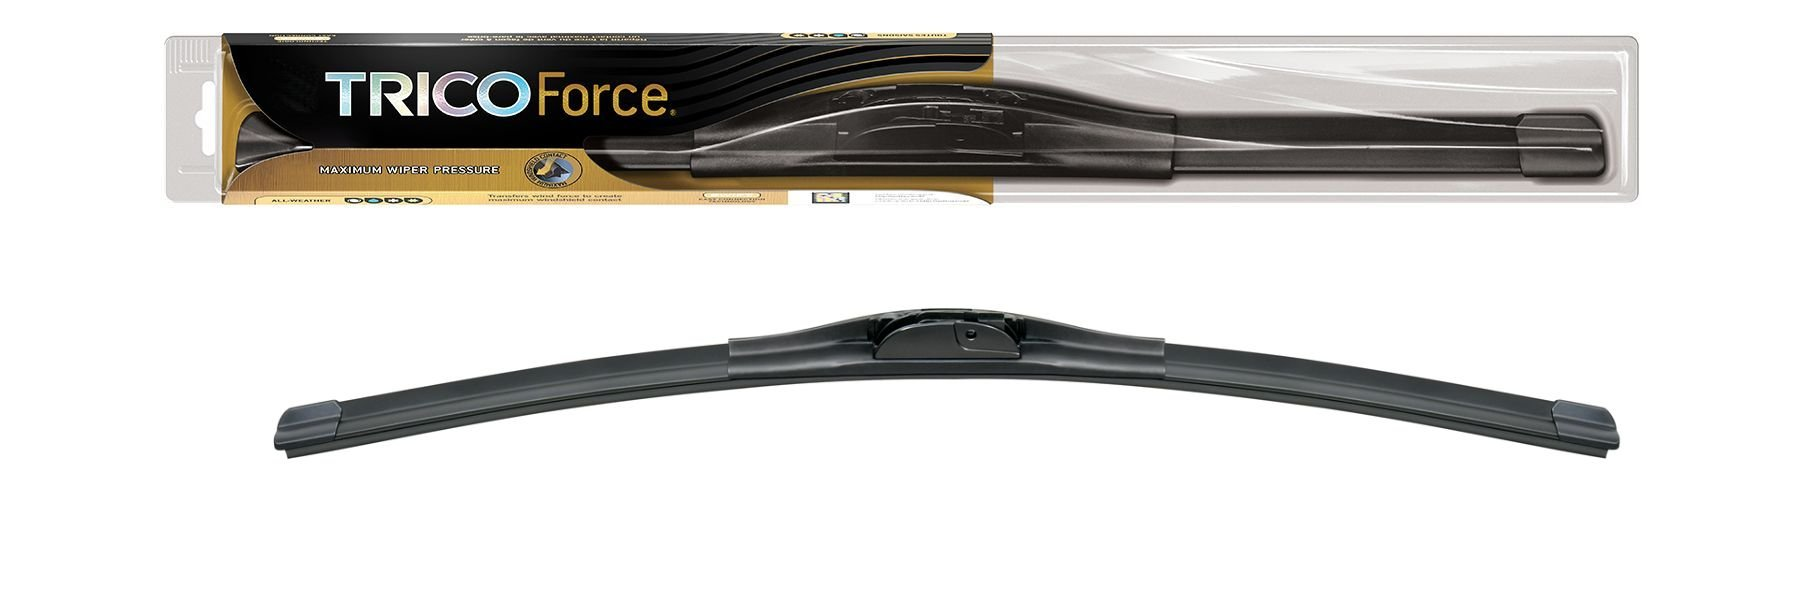 TRICO Force 25-220 High Performance Beam Wiper Blade - 22'' (Pack of 1)